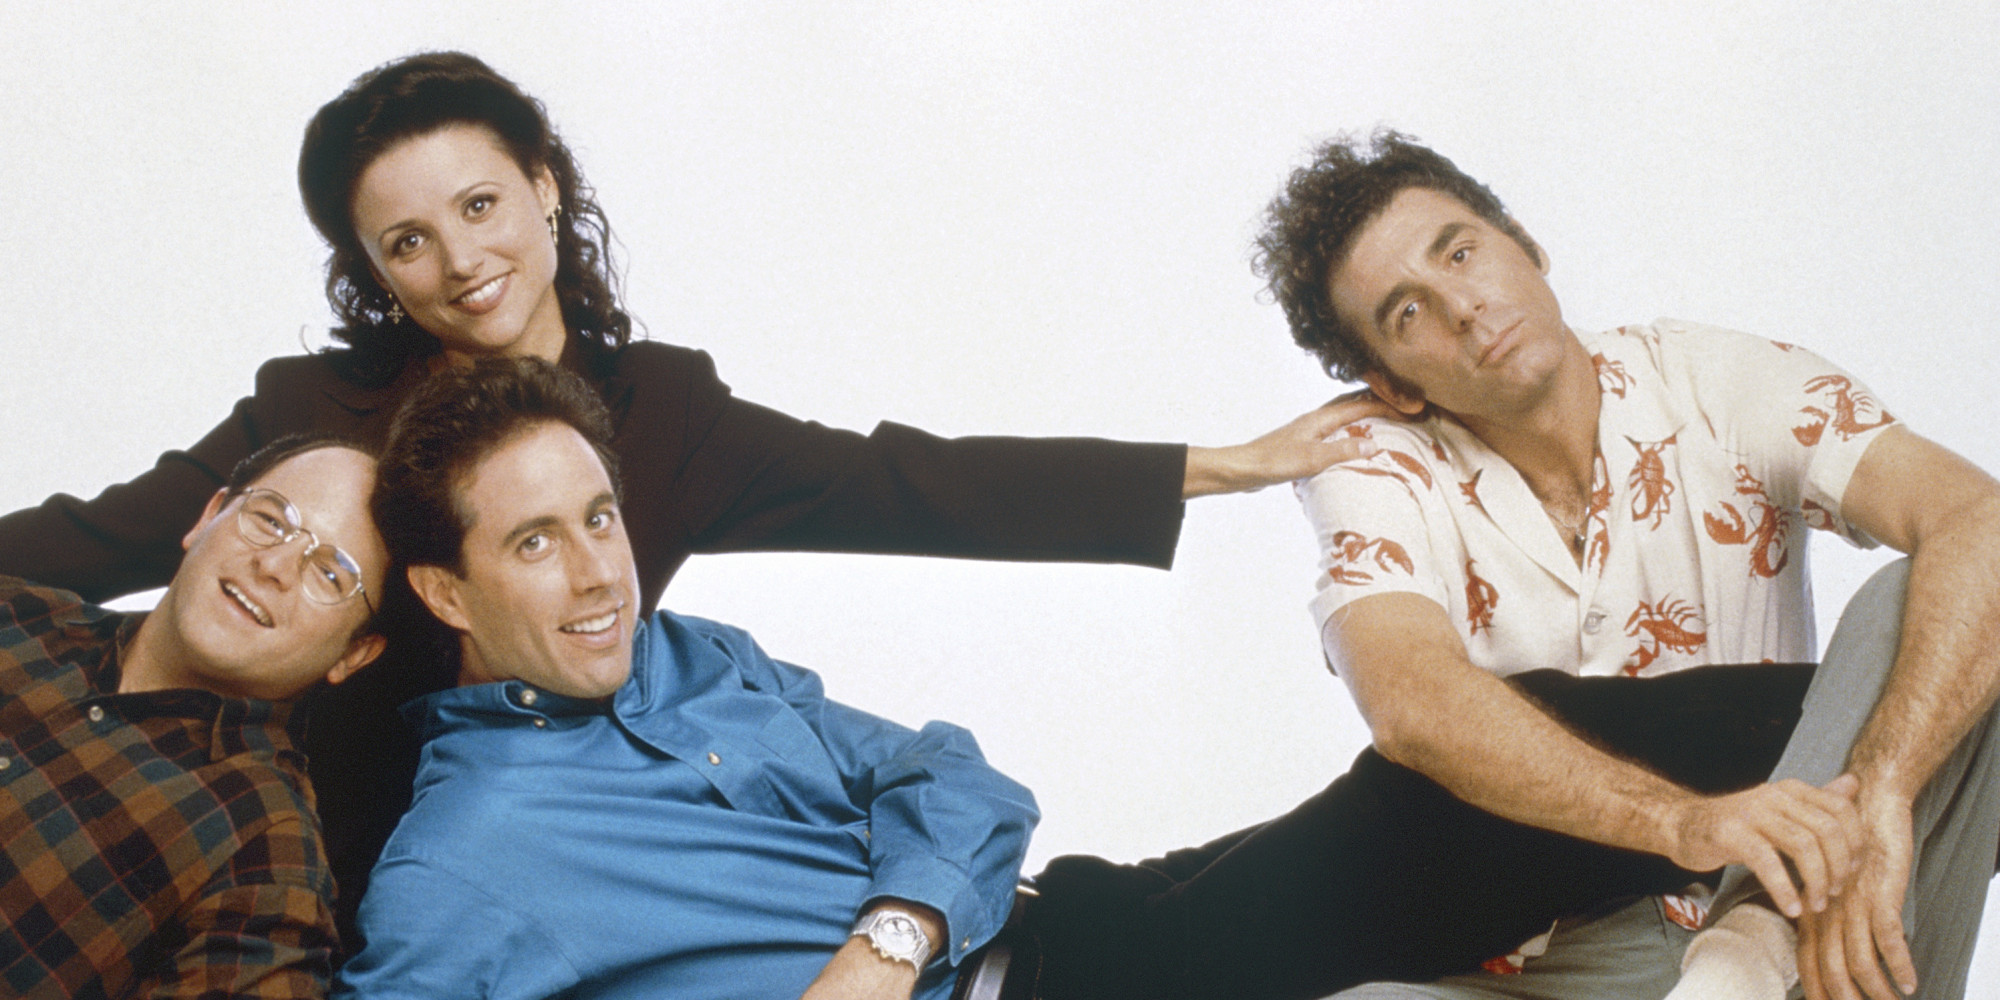 SEINFELD -- Season 6 -- Pictured front l-r Jason Alexander as George Costanza Jerry Seinfeld as Jerry Seinfeld back l-r Julia Louis-Dreyfus as Elaine Benes Michael Richards as Cosmo Kramer Photo by George LangeNBCNBCU Photo Bank via Getty Images